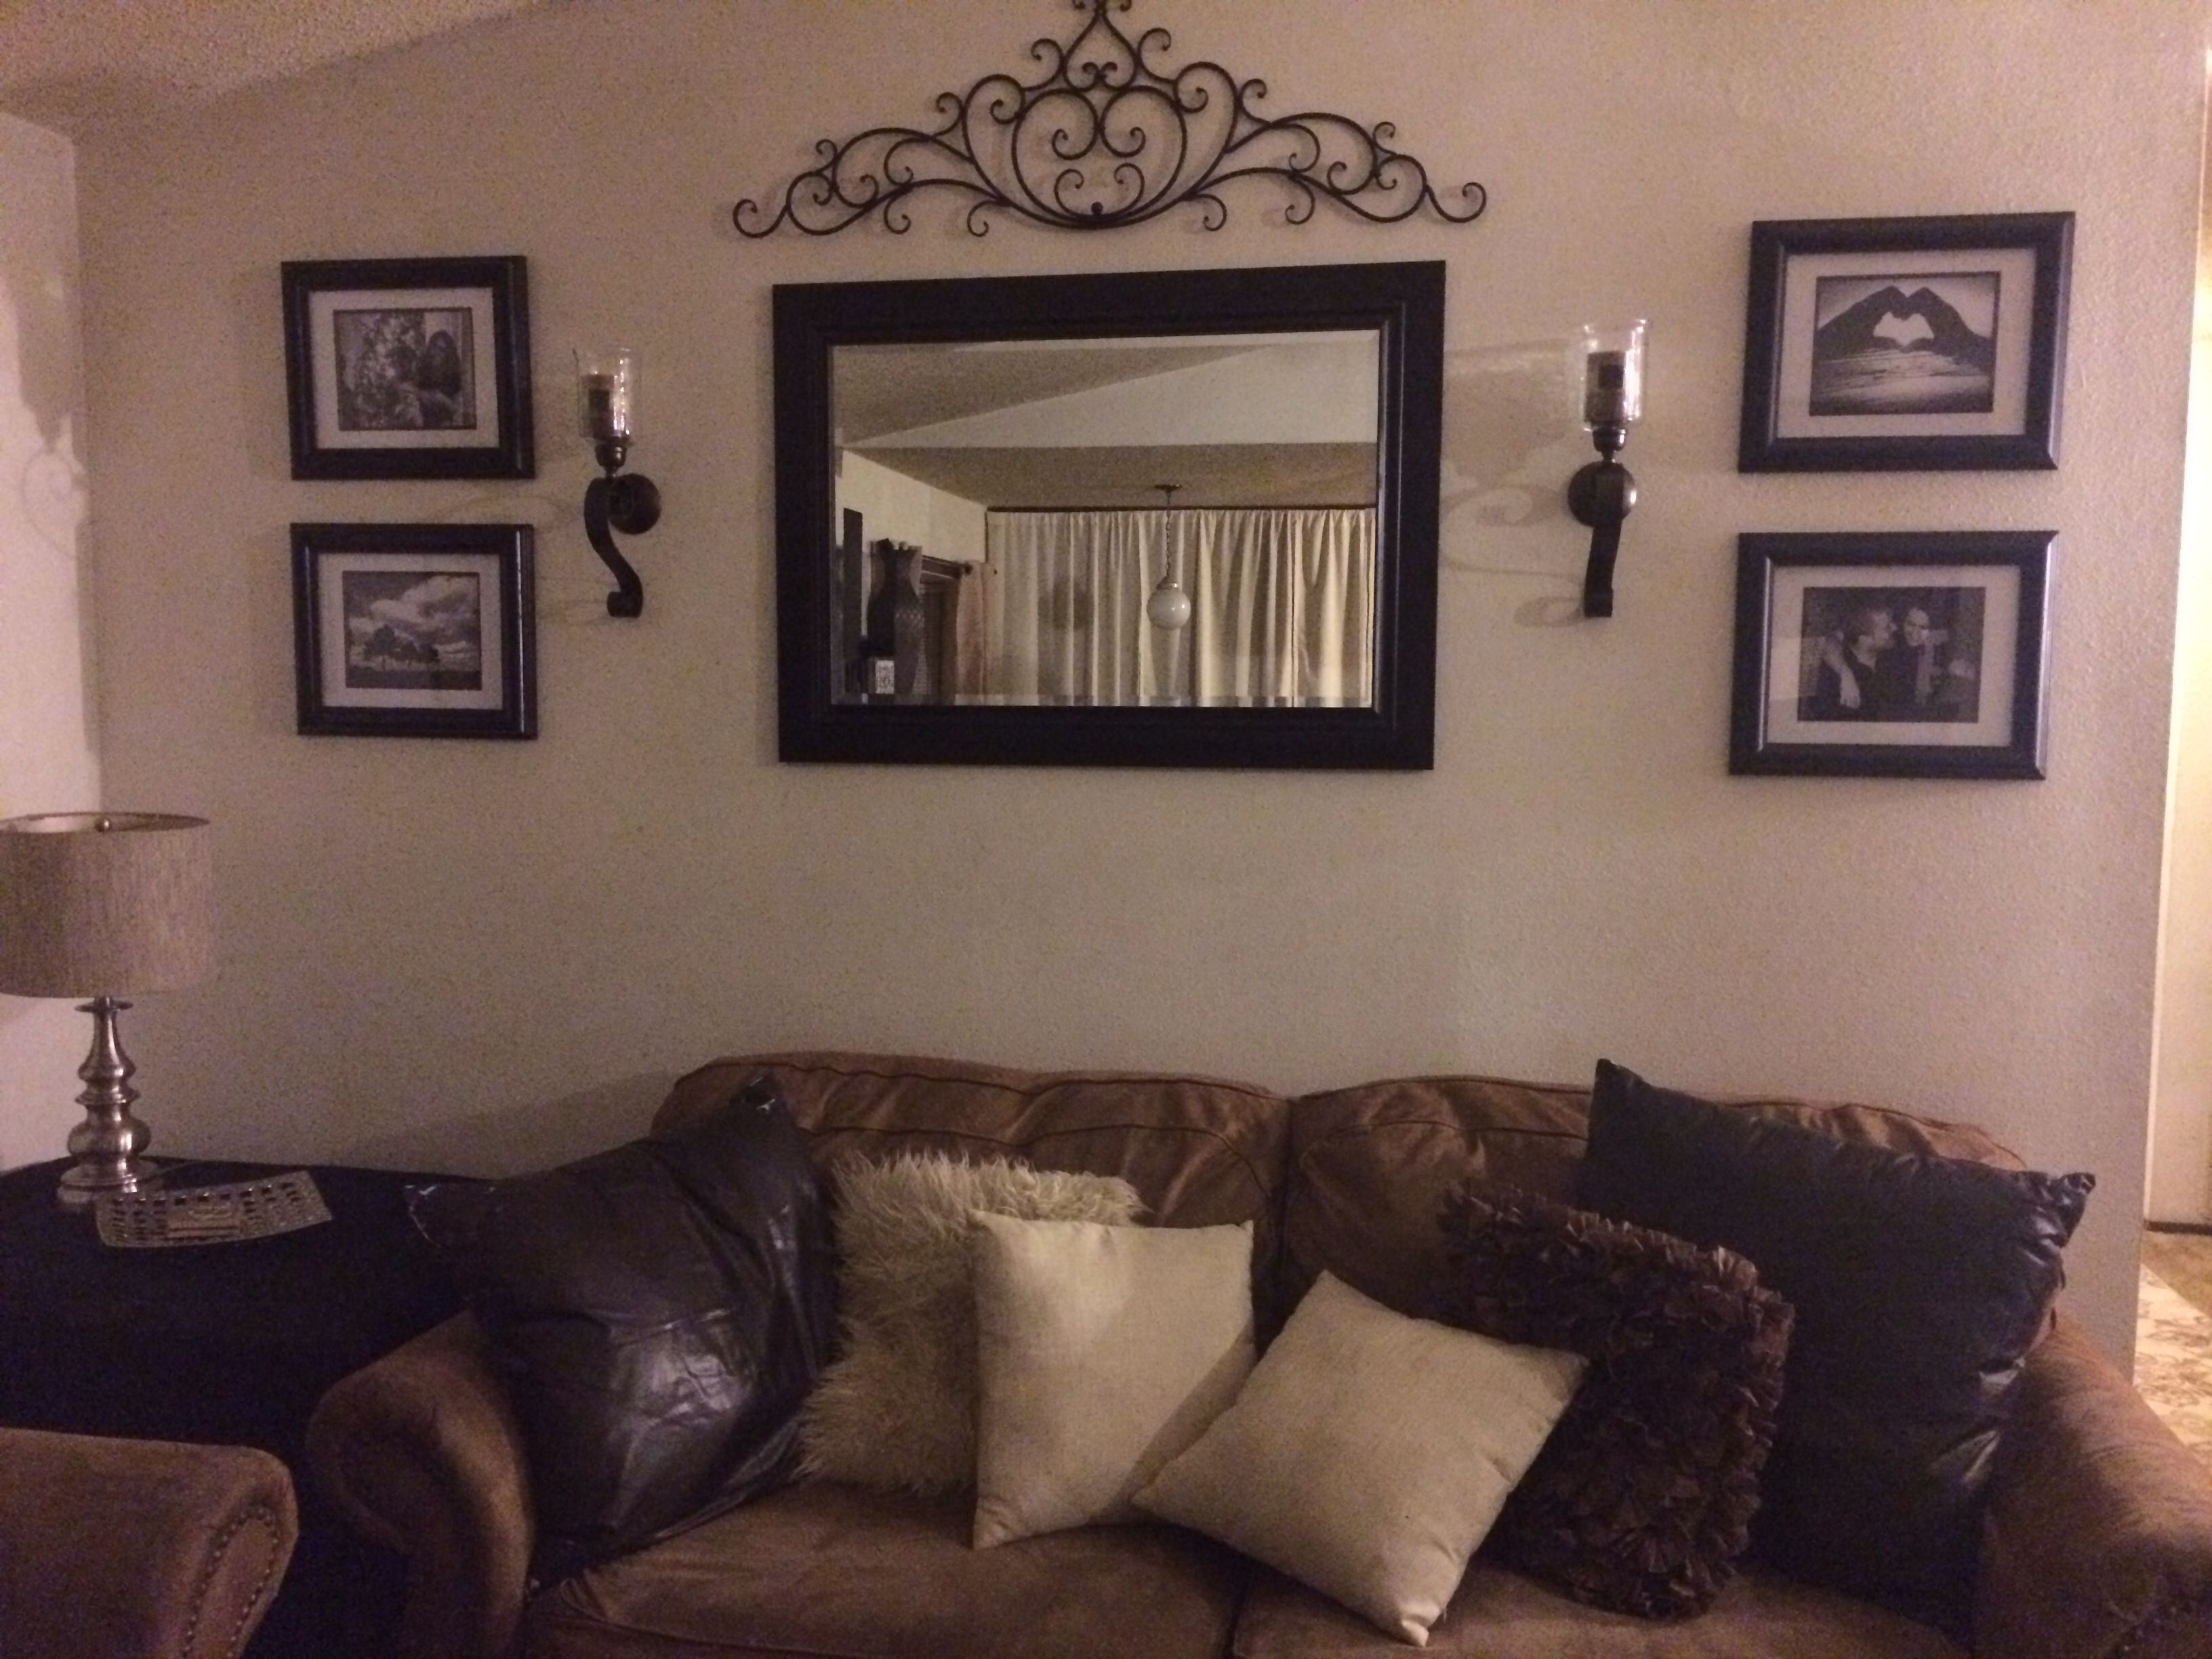 Behind Couch Wall In Living Room Mirror, Frame, Sconces, And Metal With Best And Newest Wall Accents Behind Tv Or Couch (View 5 of 15)